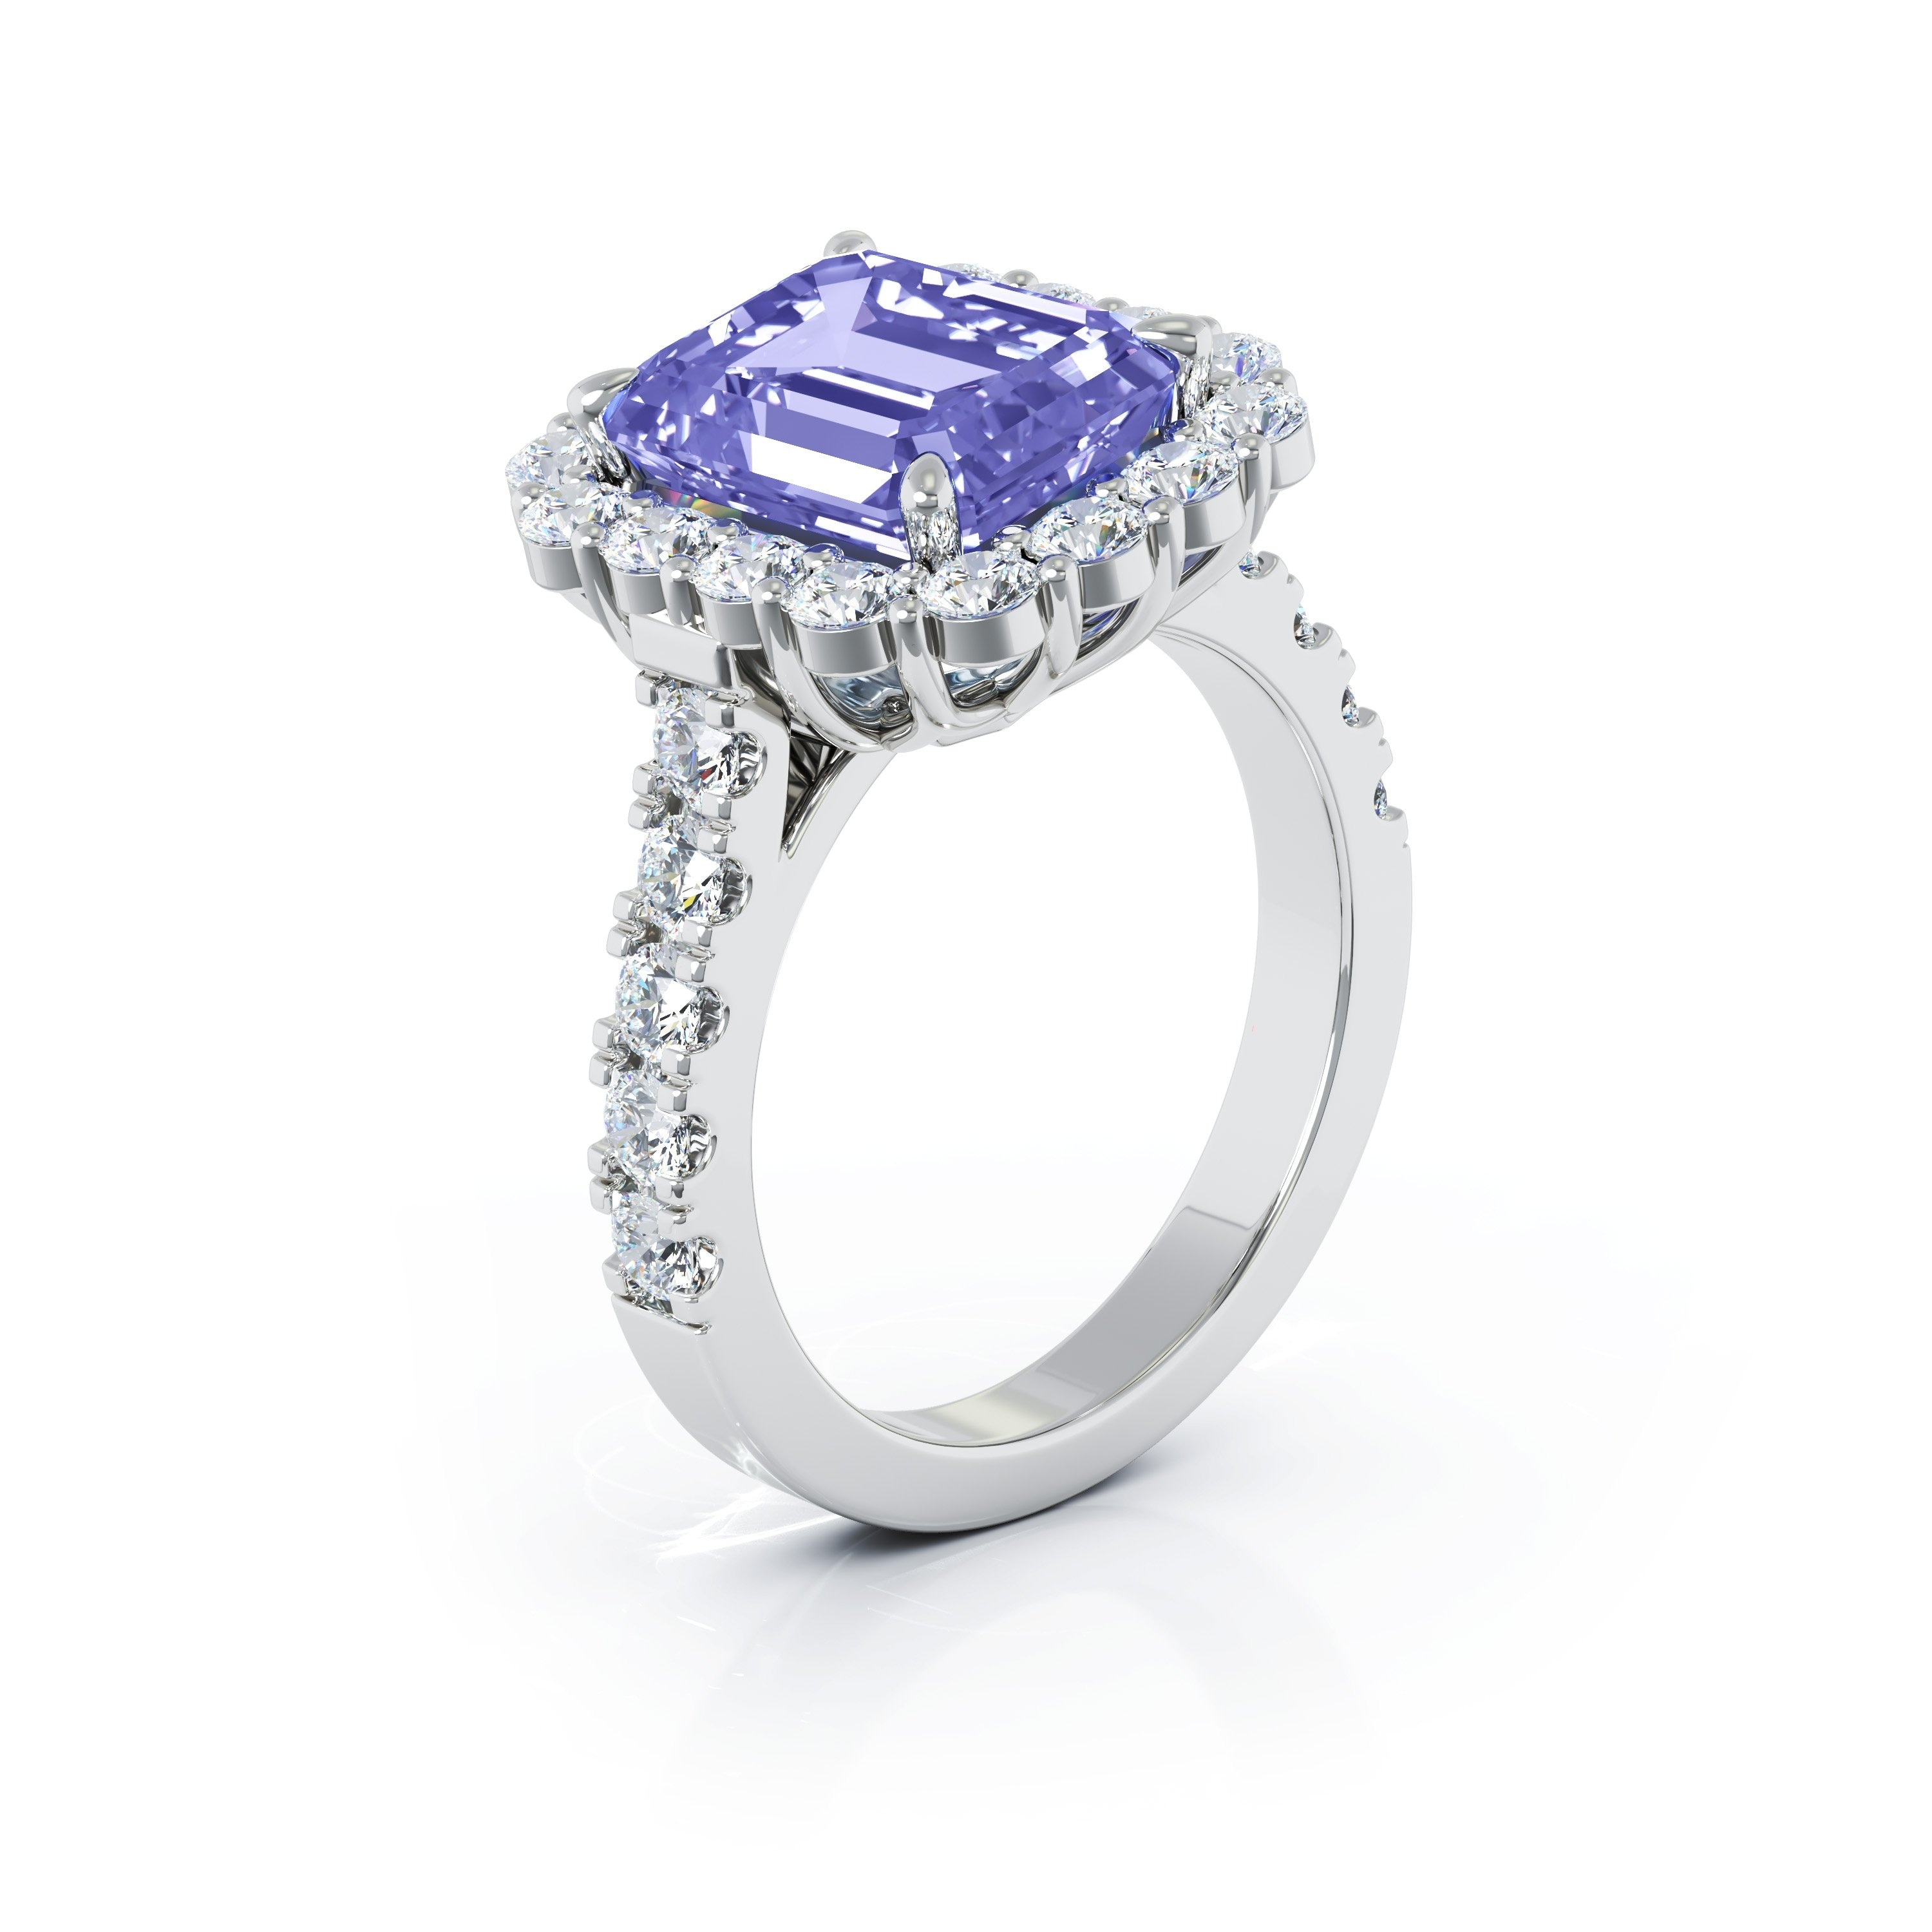 Details about  /1.30 CT Trillion Cut Tanzanite Engagement Wedding Ring In 14K Yellow Gold Over